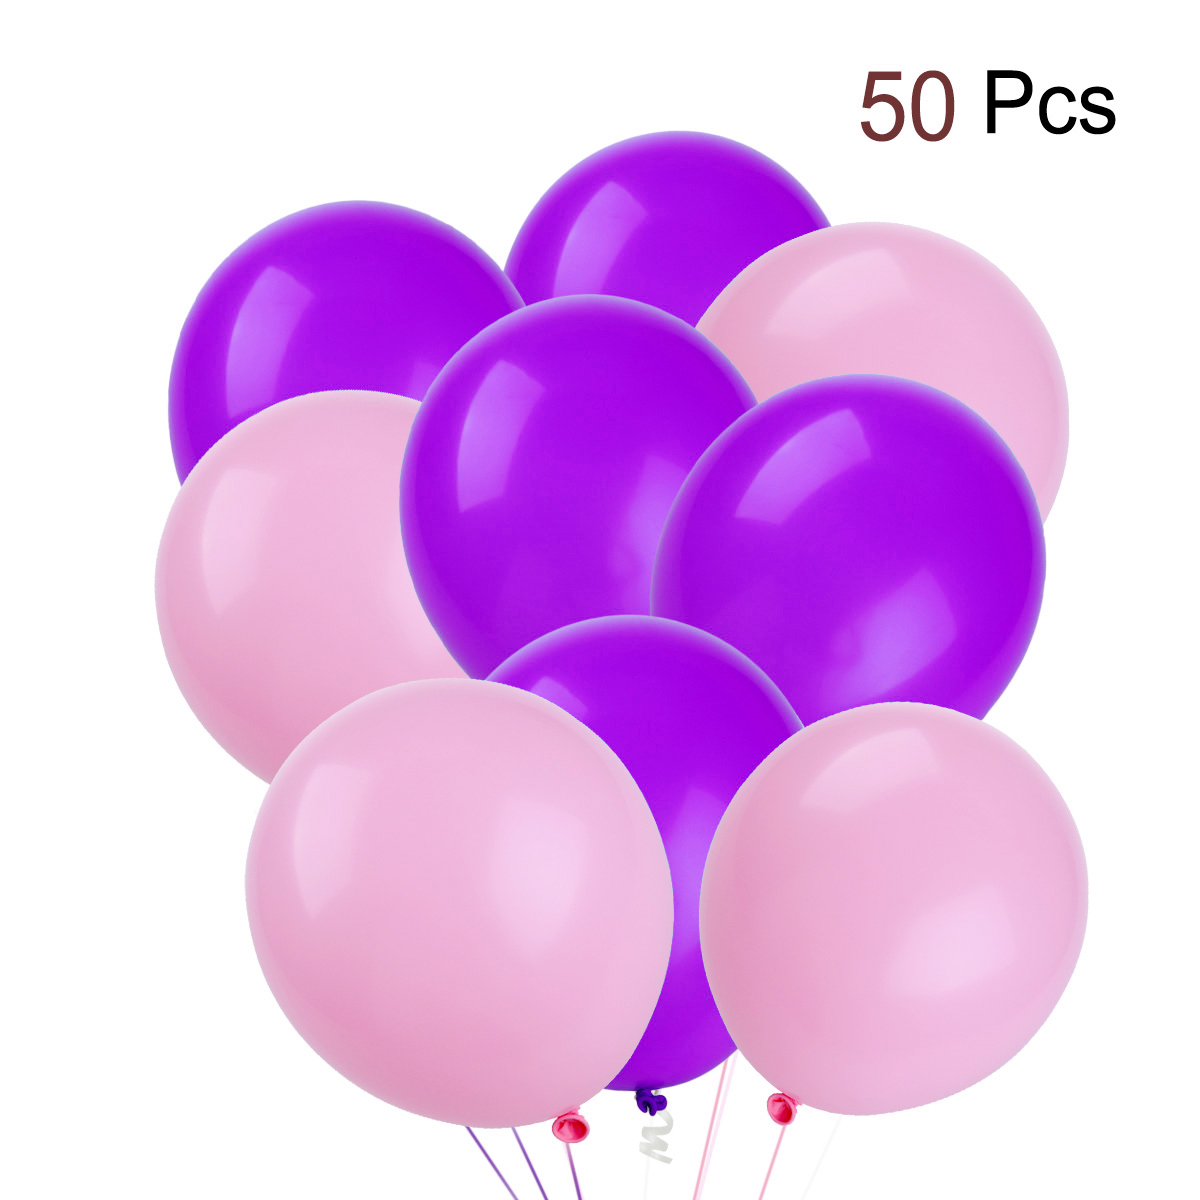 50pcs Round Latex Balloons Decorative Balloons Birthday Wedding Party Decoration Supplies